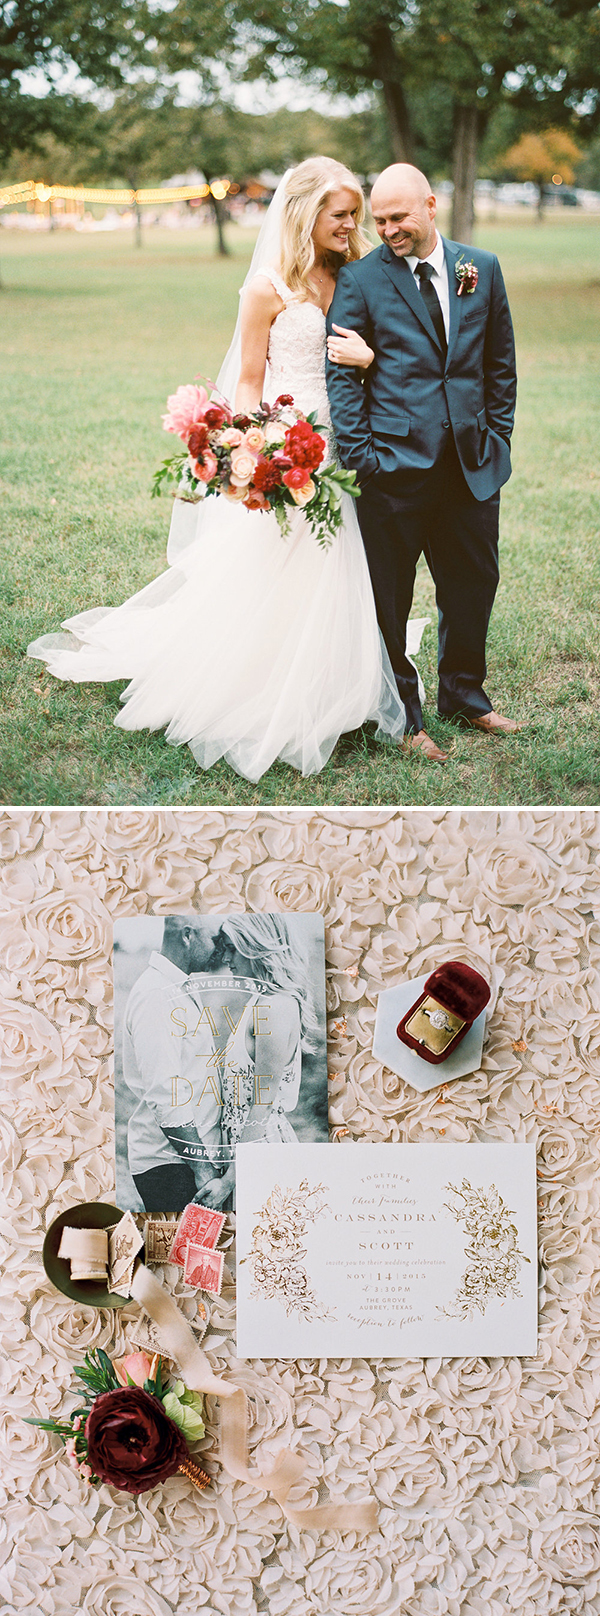 Minted Real Wedding at The Grove in Aubrey, Texas